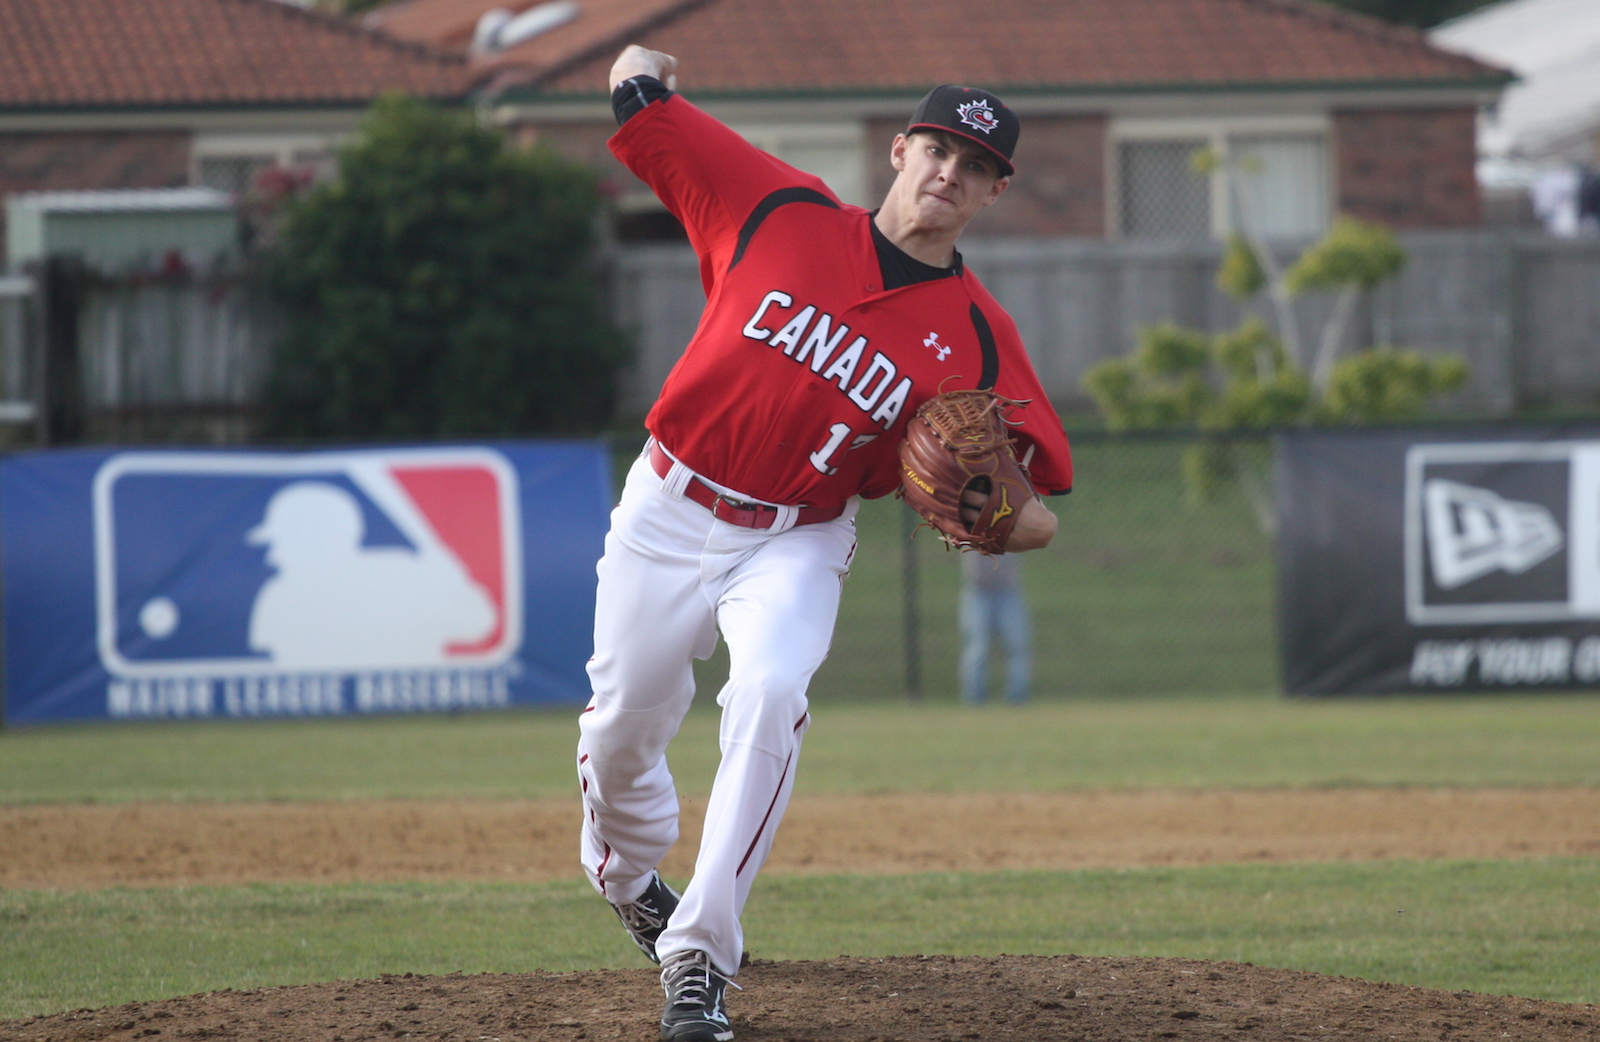 Will McAffer (North Vancouver, BC) pitched two scoreless innings before being tagged for a run in a 3-2 loss to Australia.